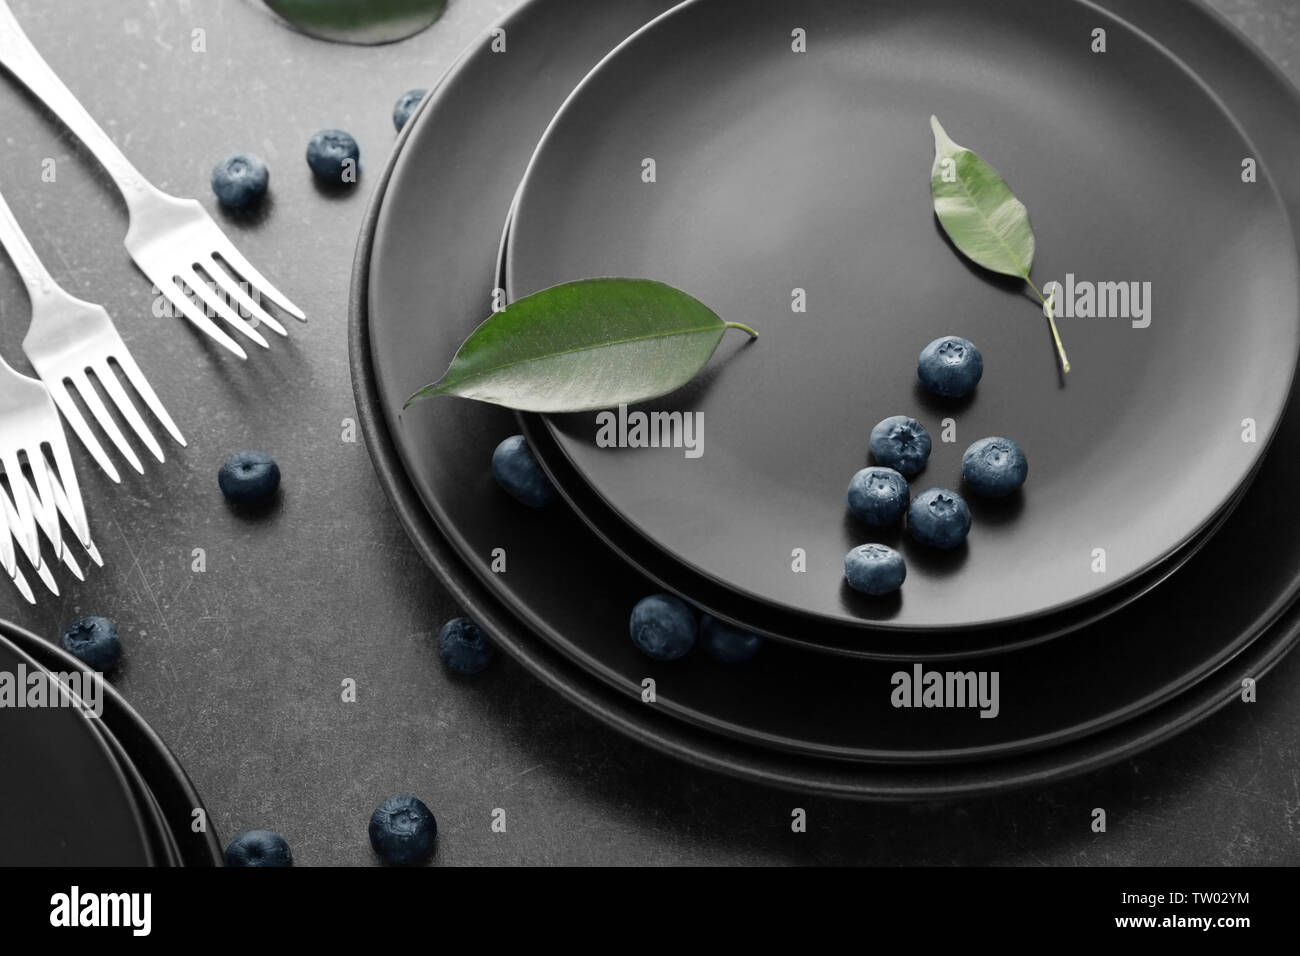 Black plates and cutlery on gray background - Stock Image